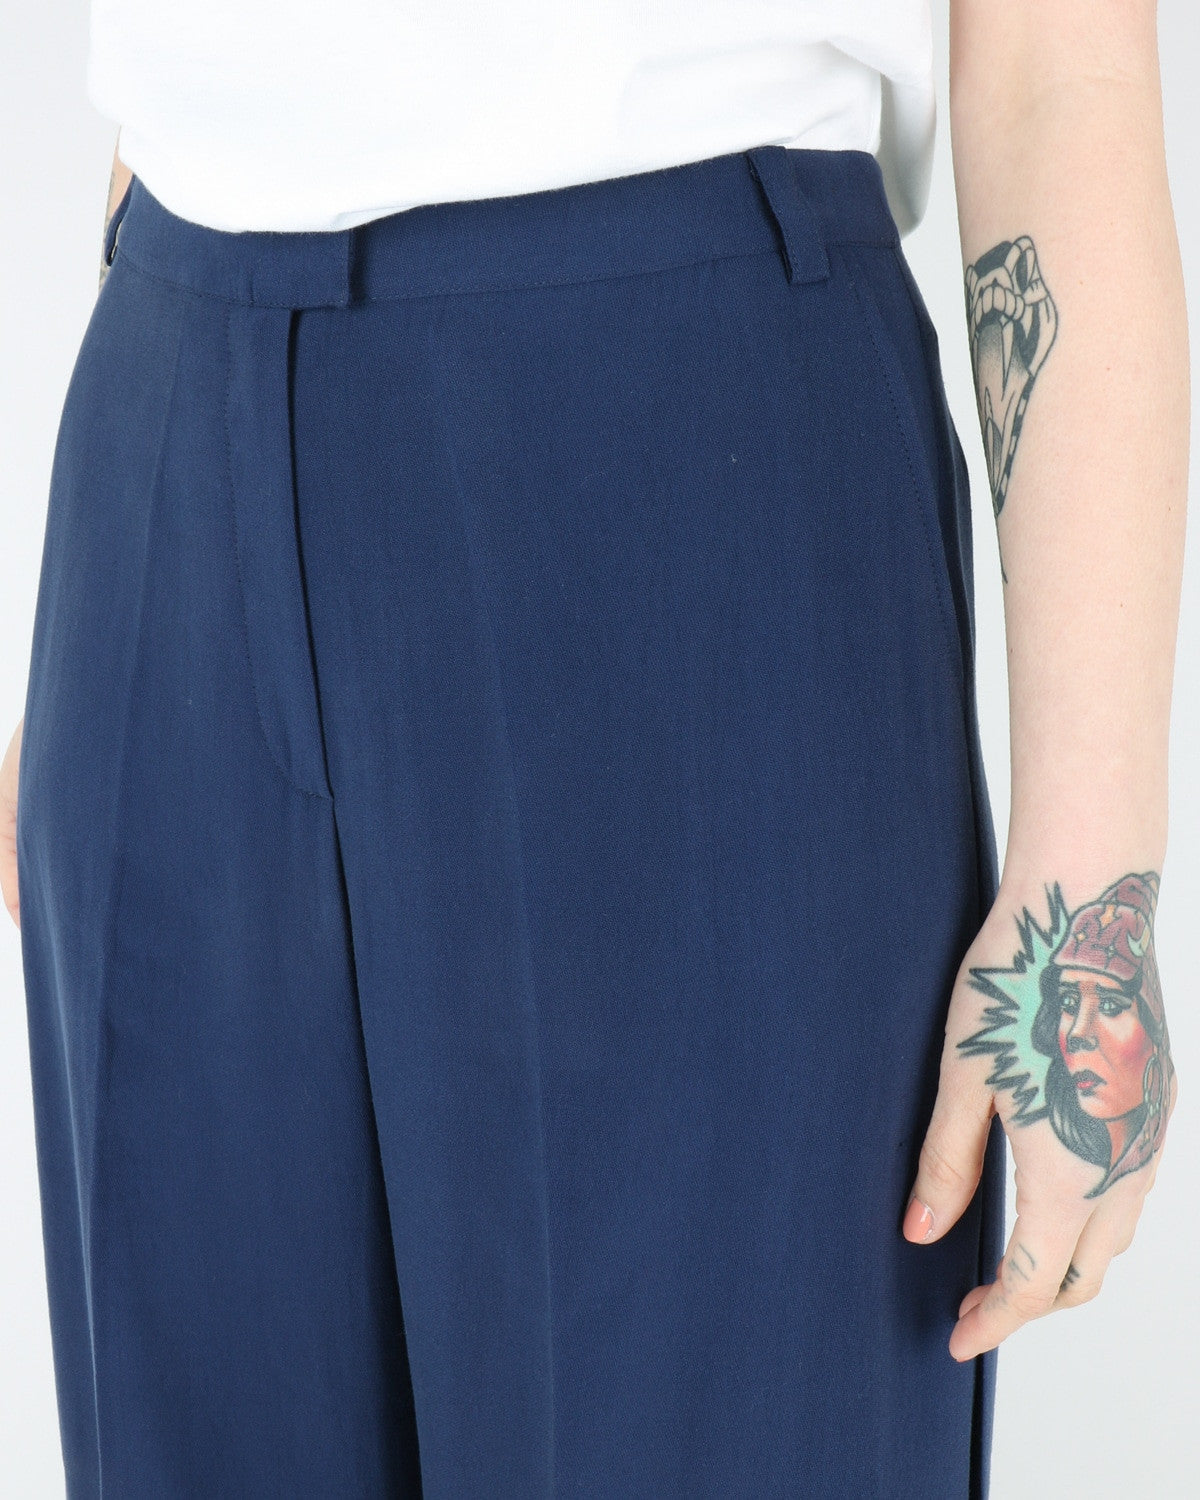 libertine libertine_day trousers_hq blue_view_3_3